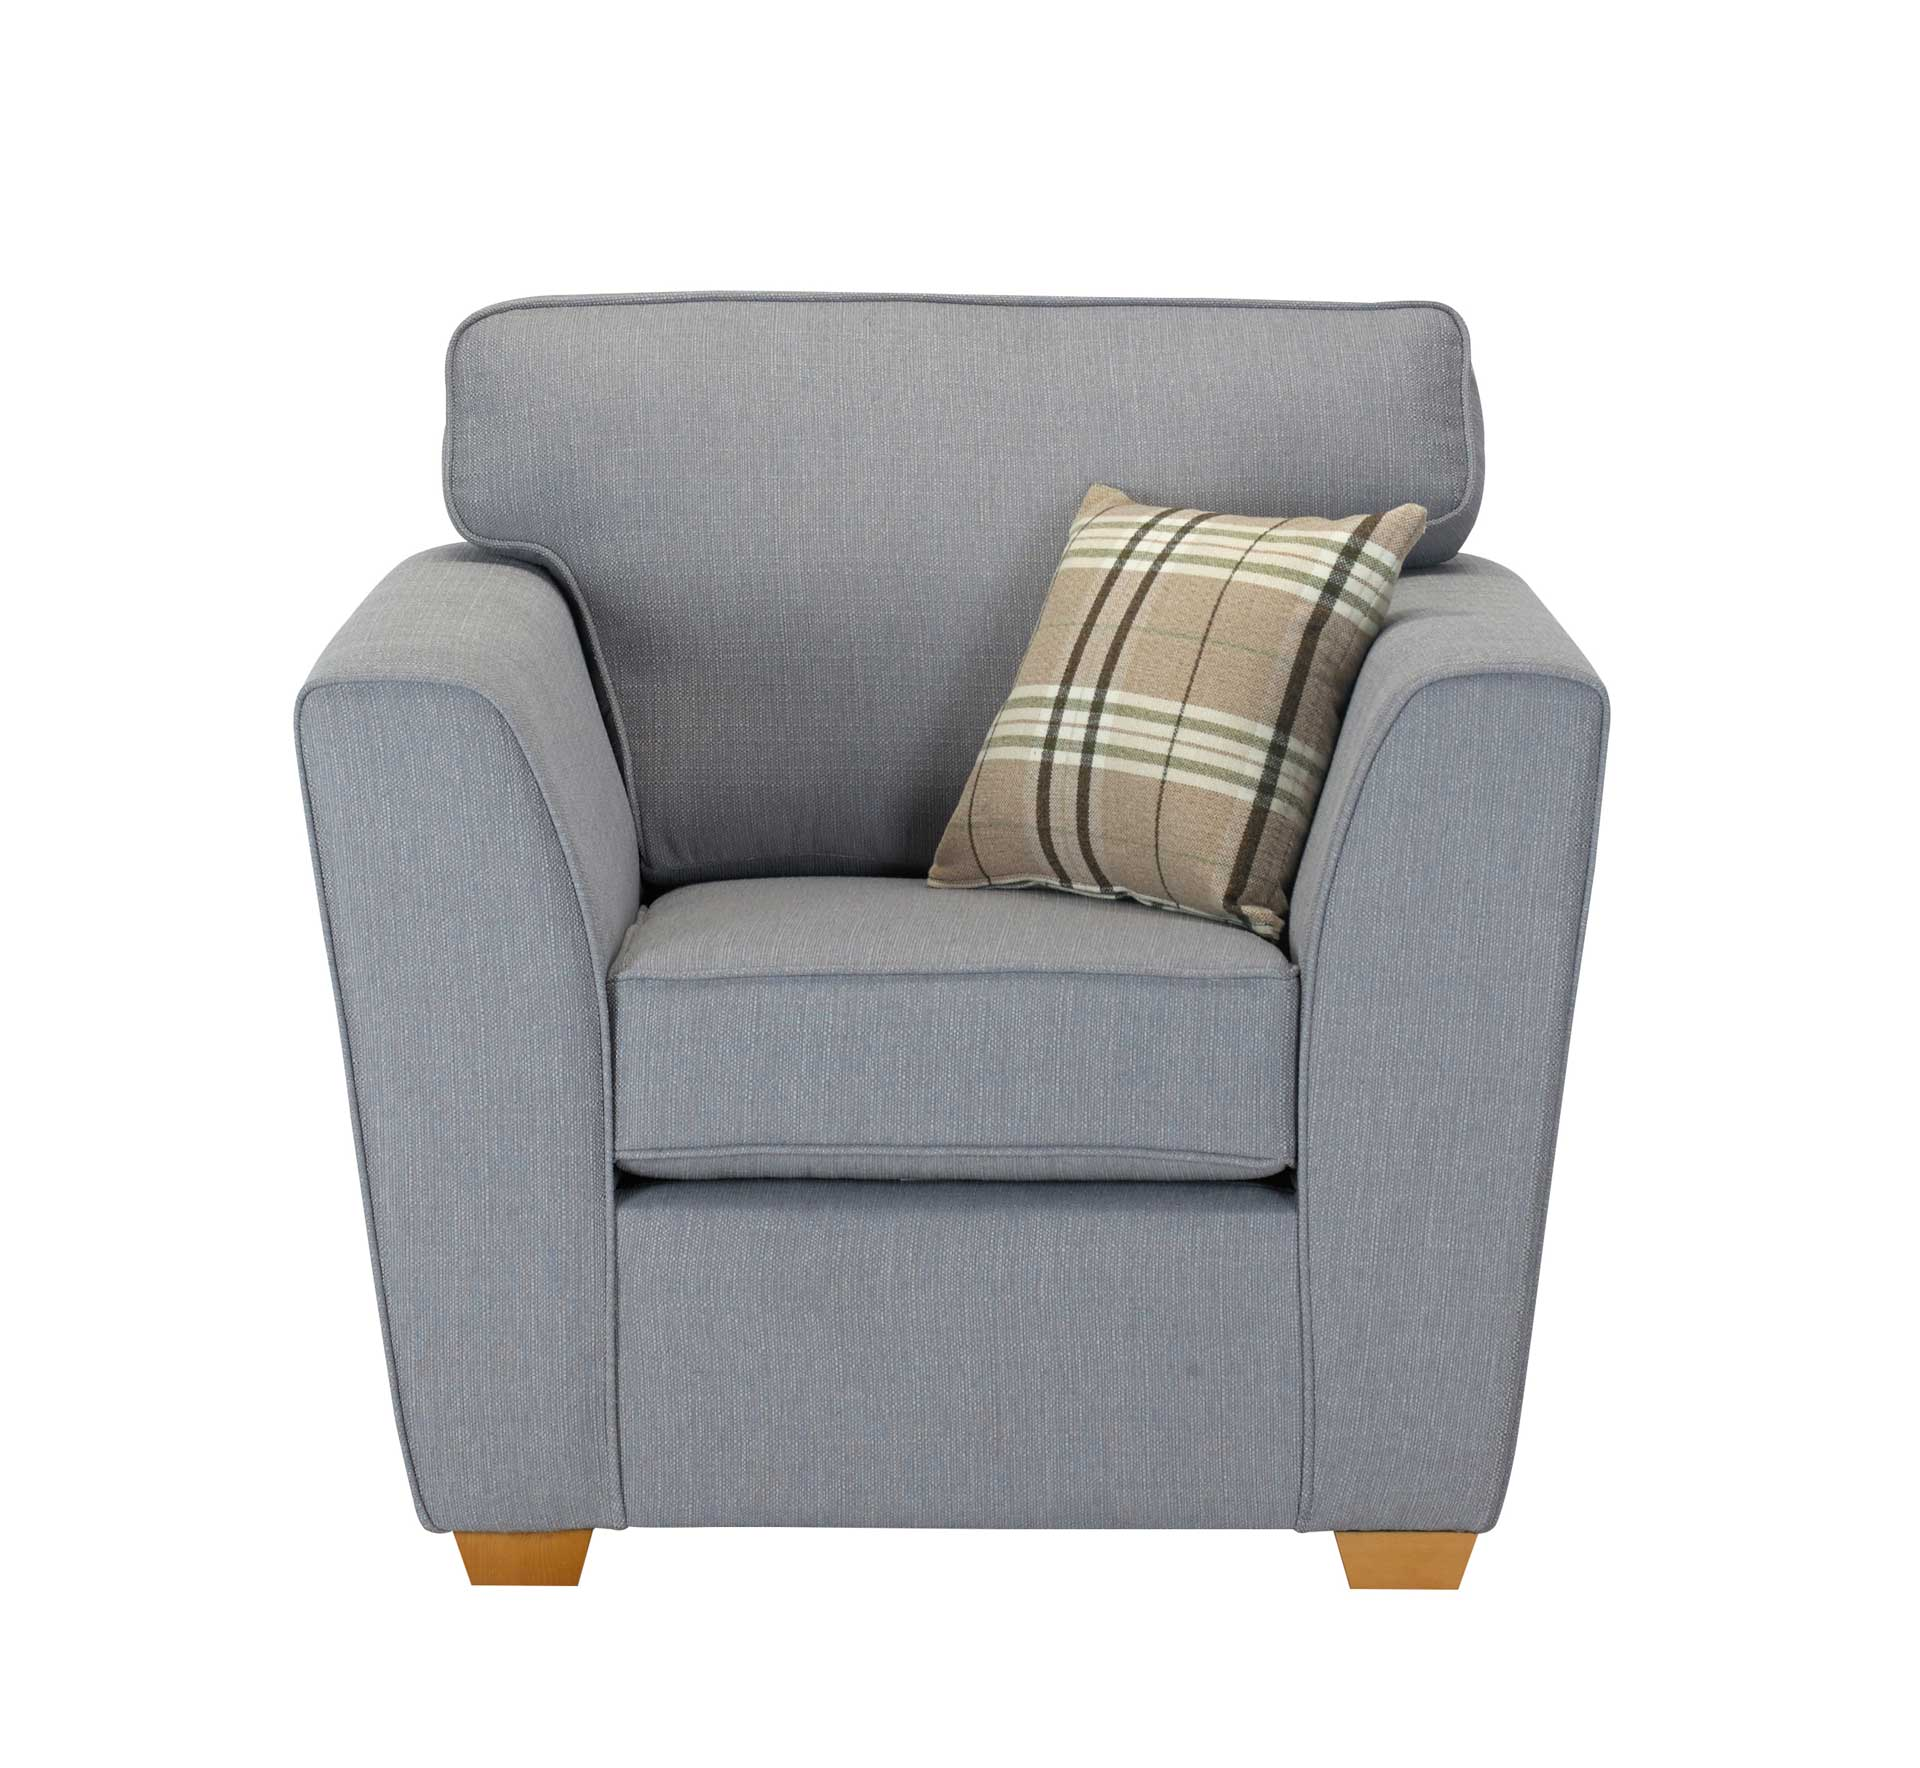 Bluebell Chair - available as a chaise, 3 seater, 2 seater and chair.